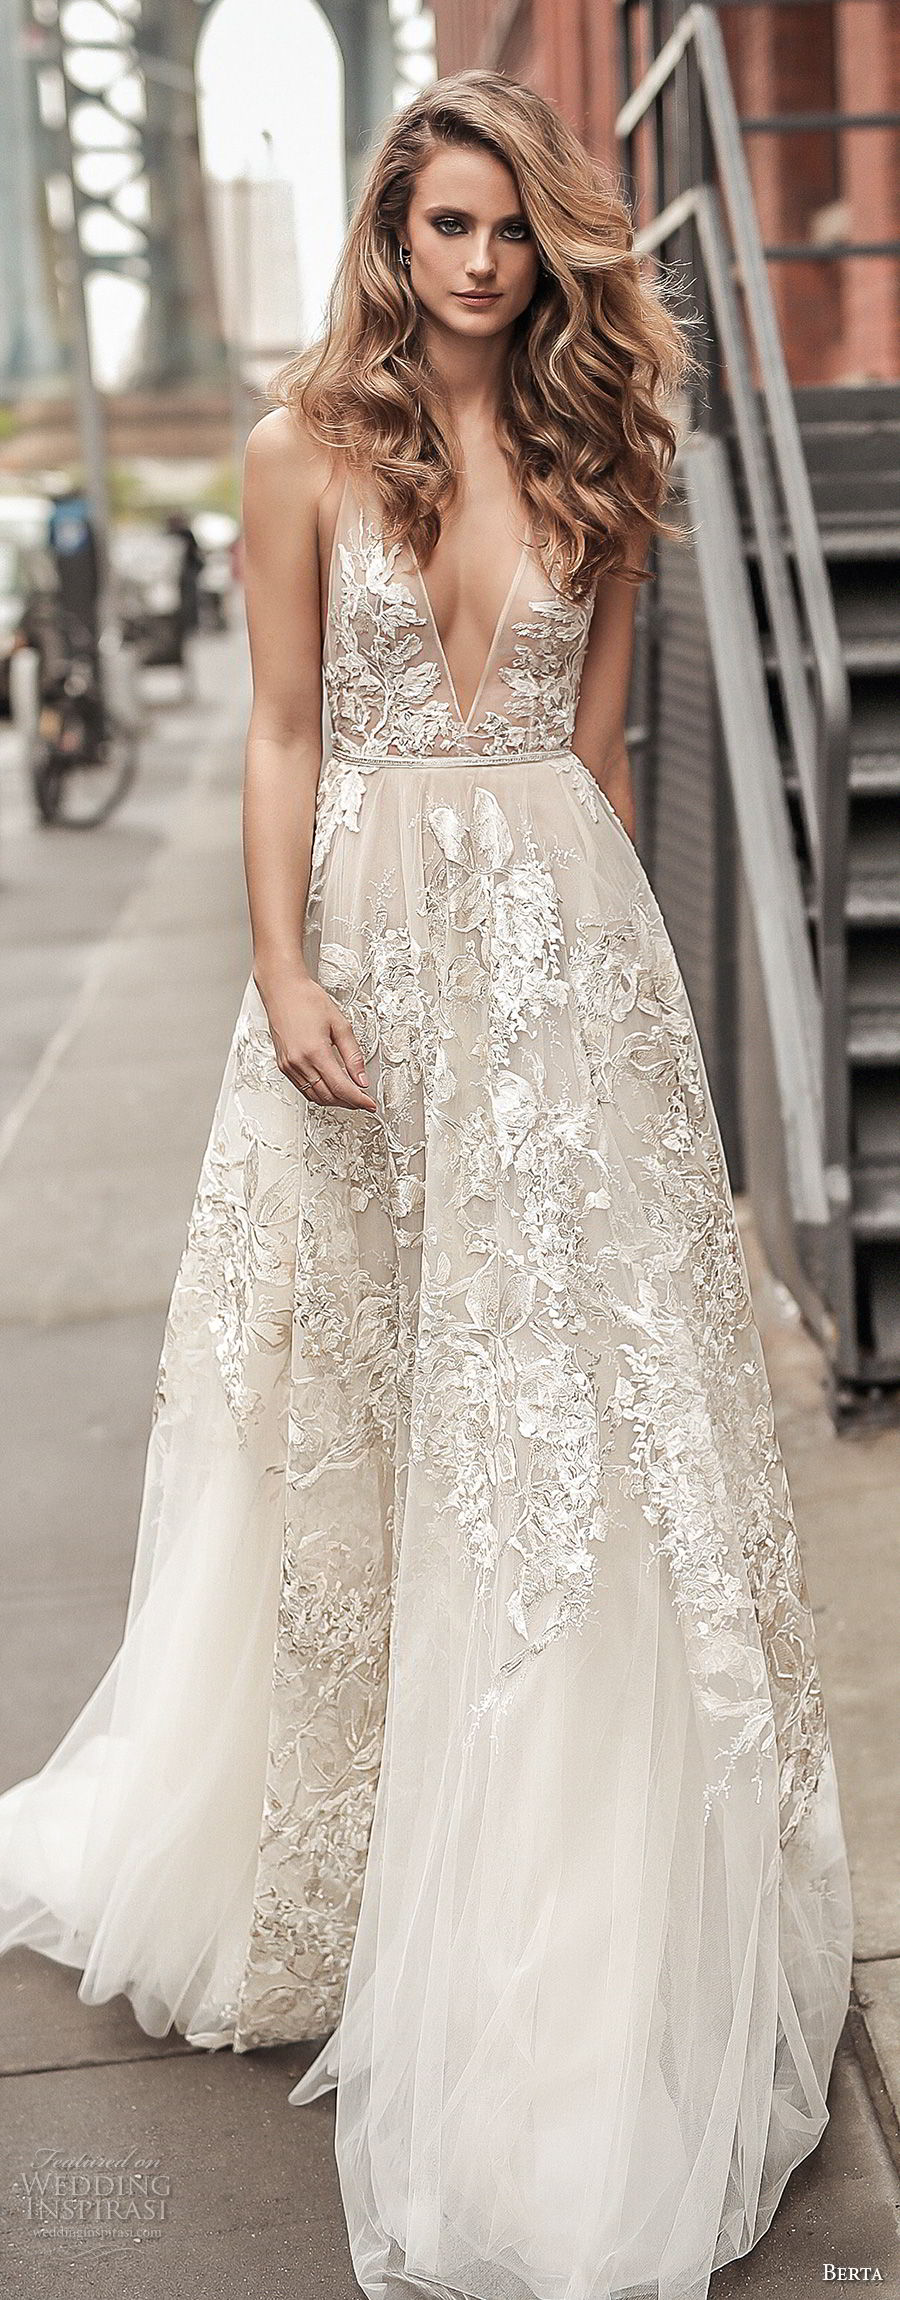 Photos Of Wedding Dresses 2018